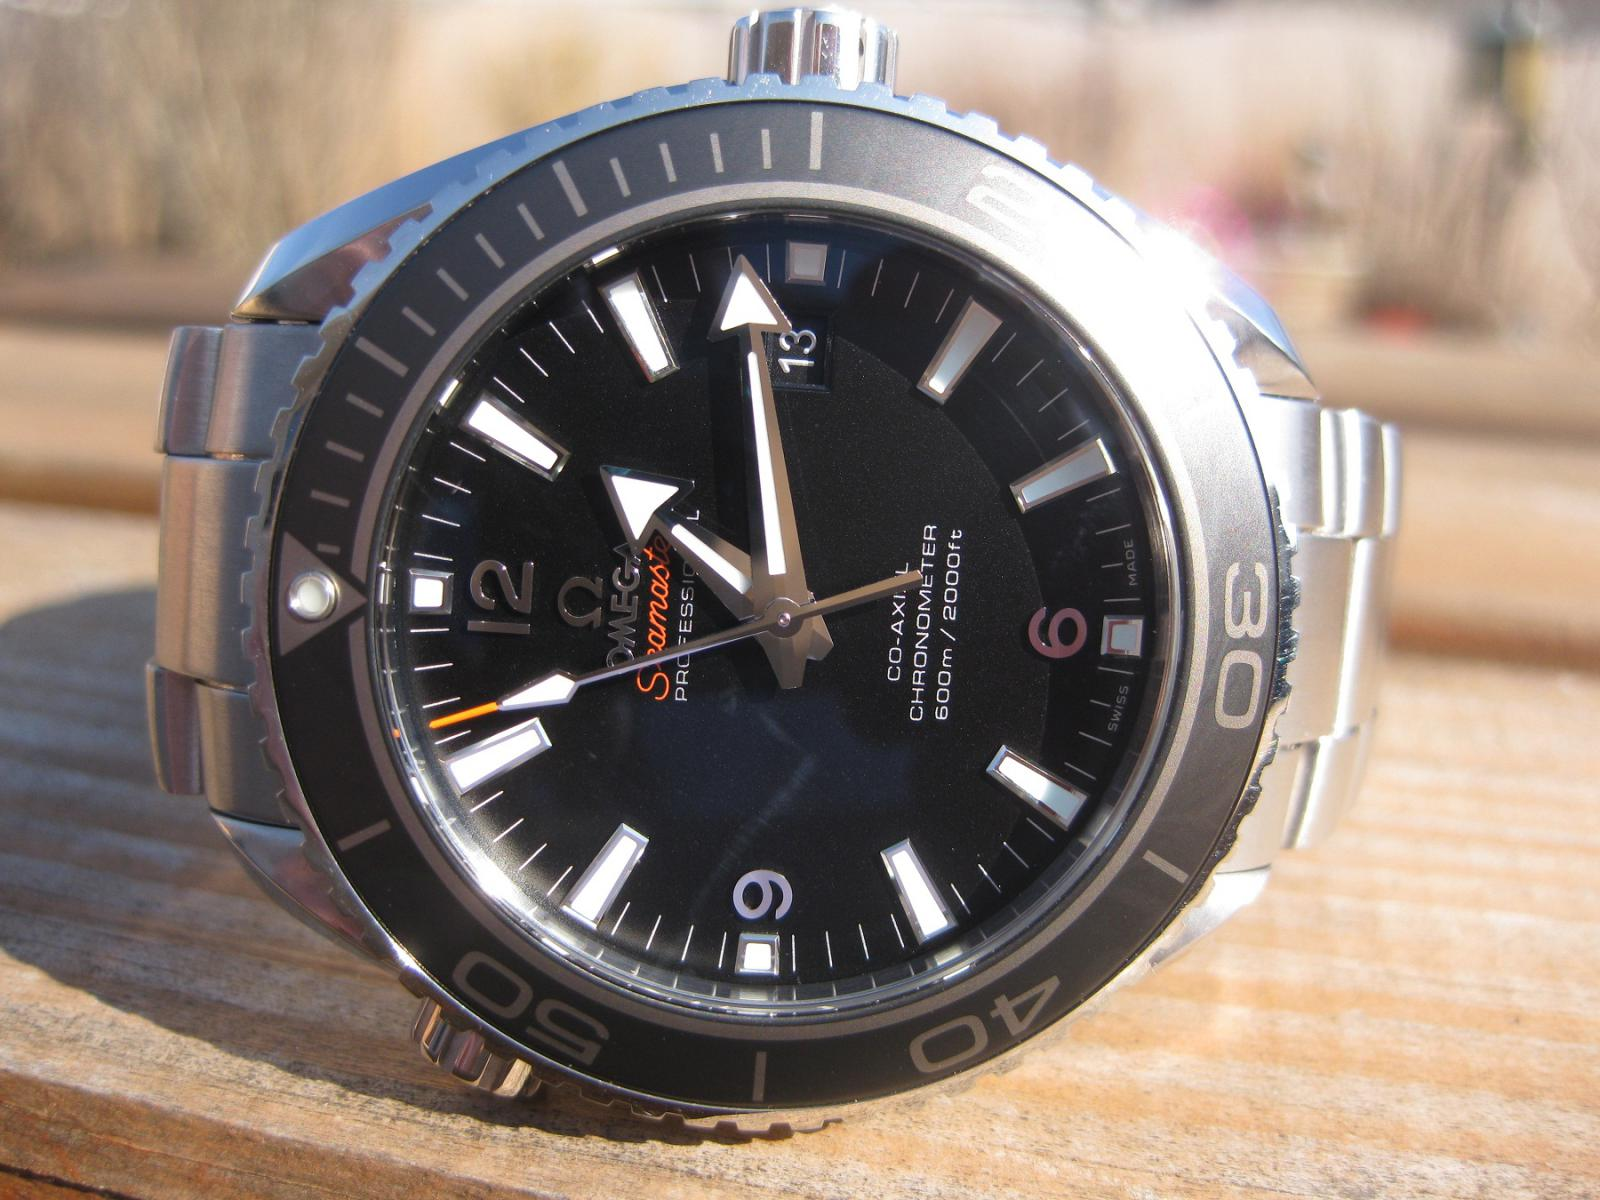 Lets see your Omega-img_0881.jpg